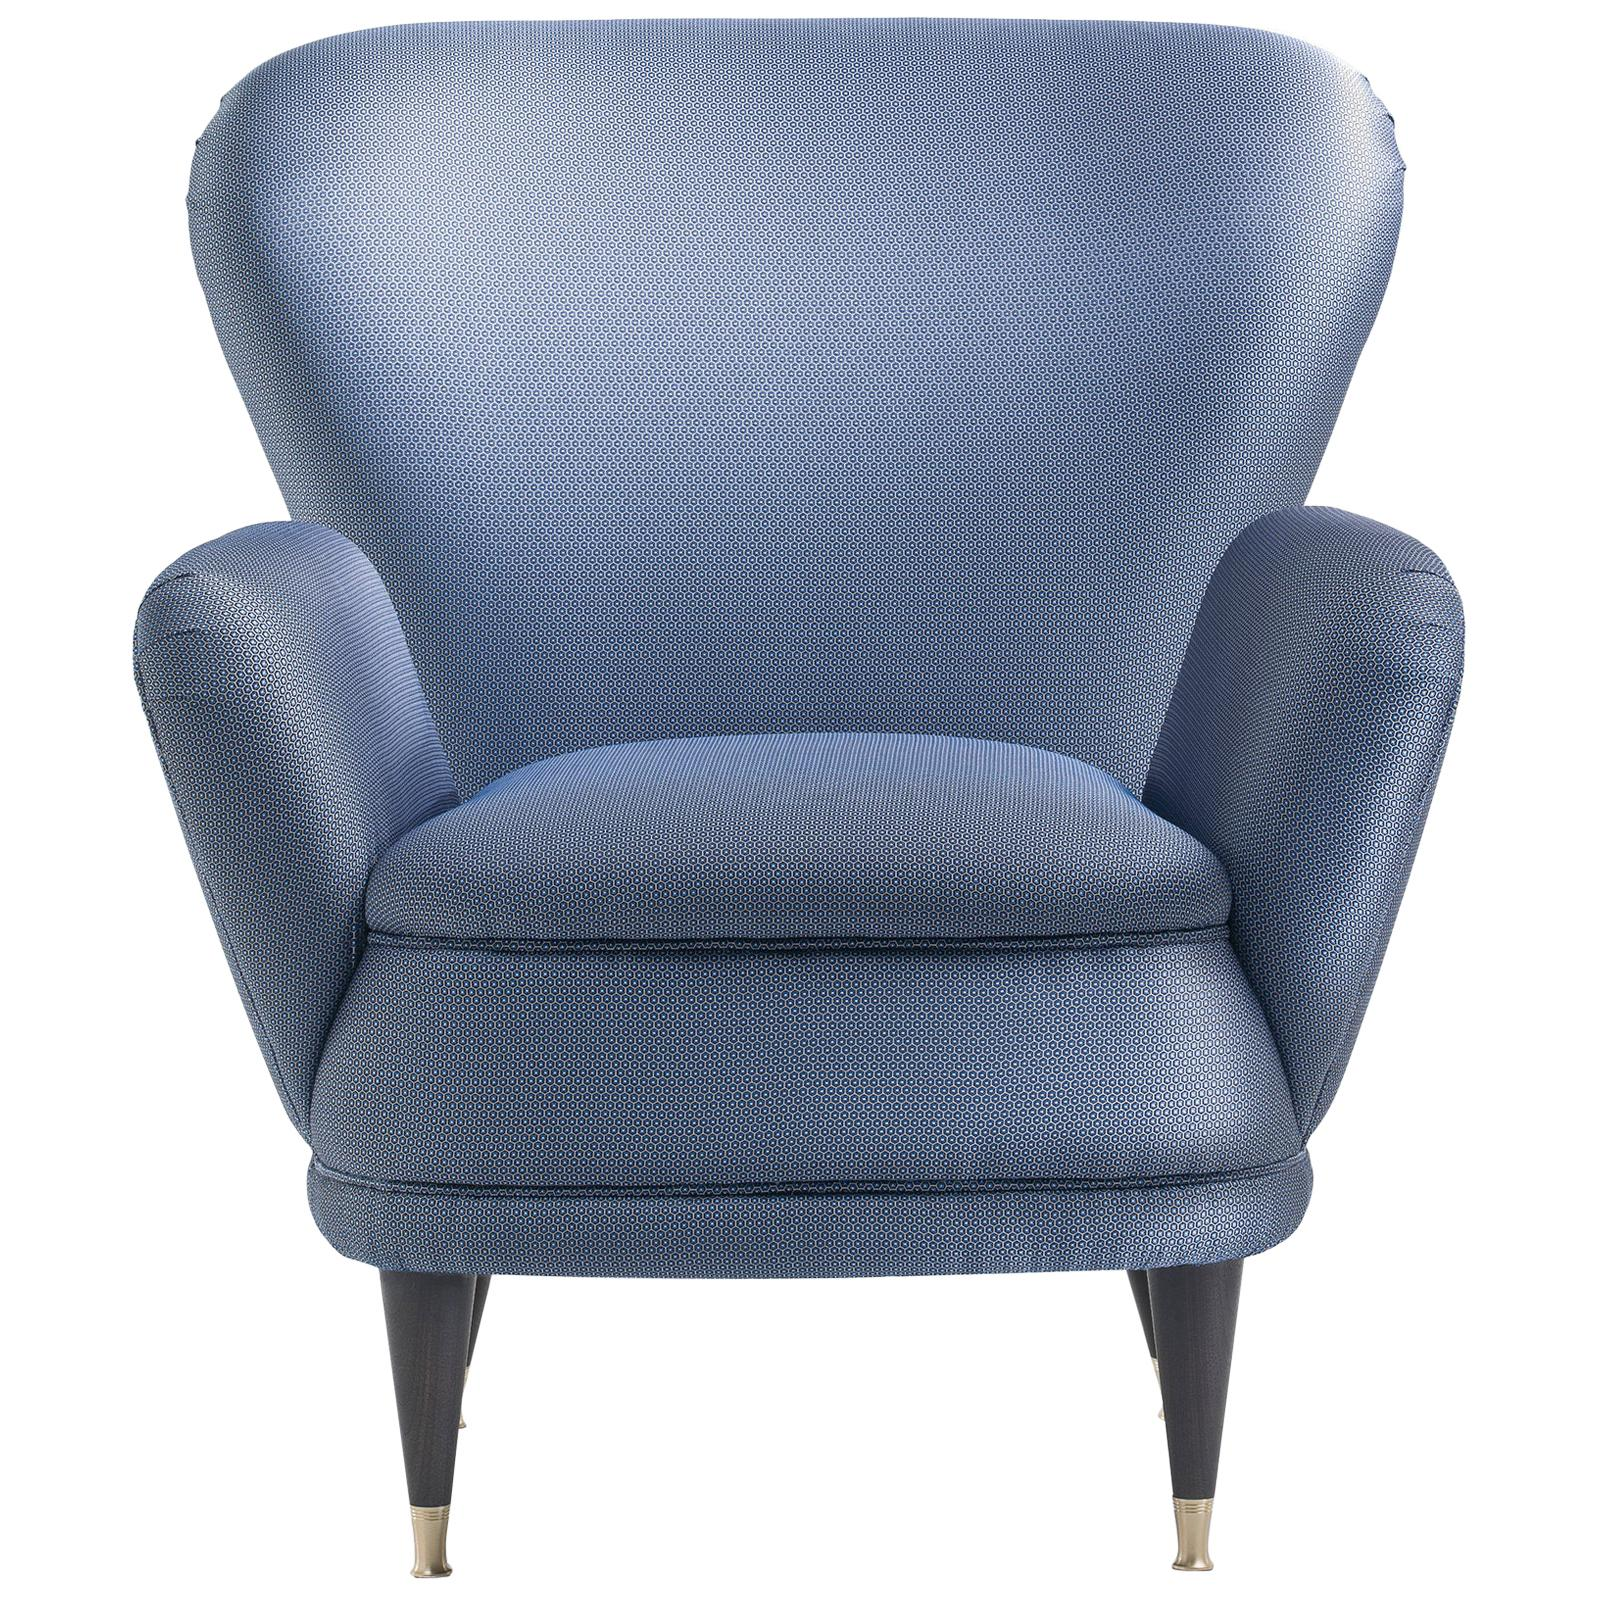 Piera Upholstered Wooden Armchair in Electric Blue Matt Black Lacquered